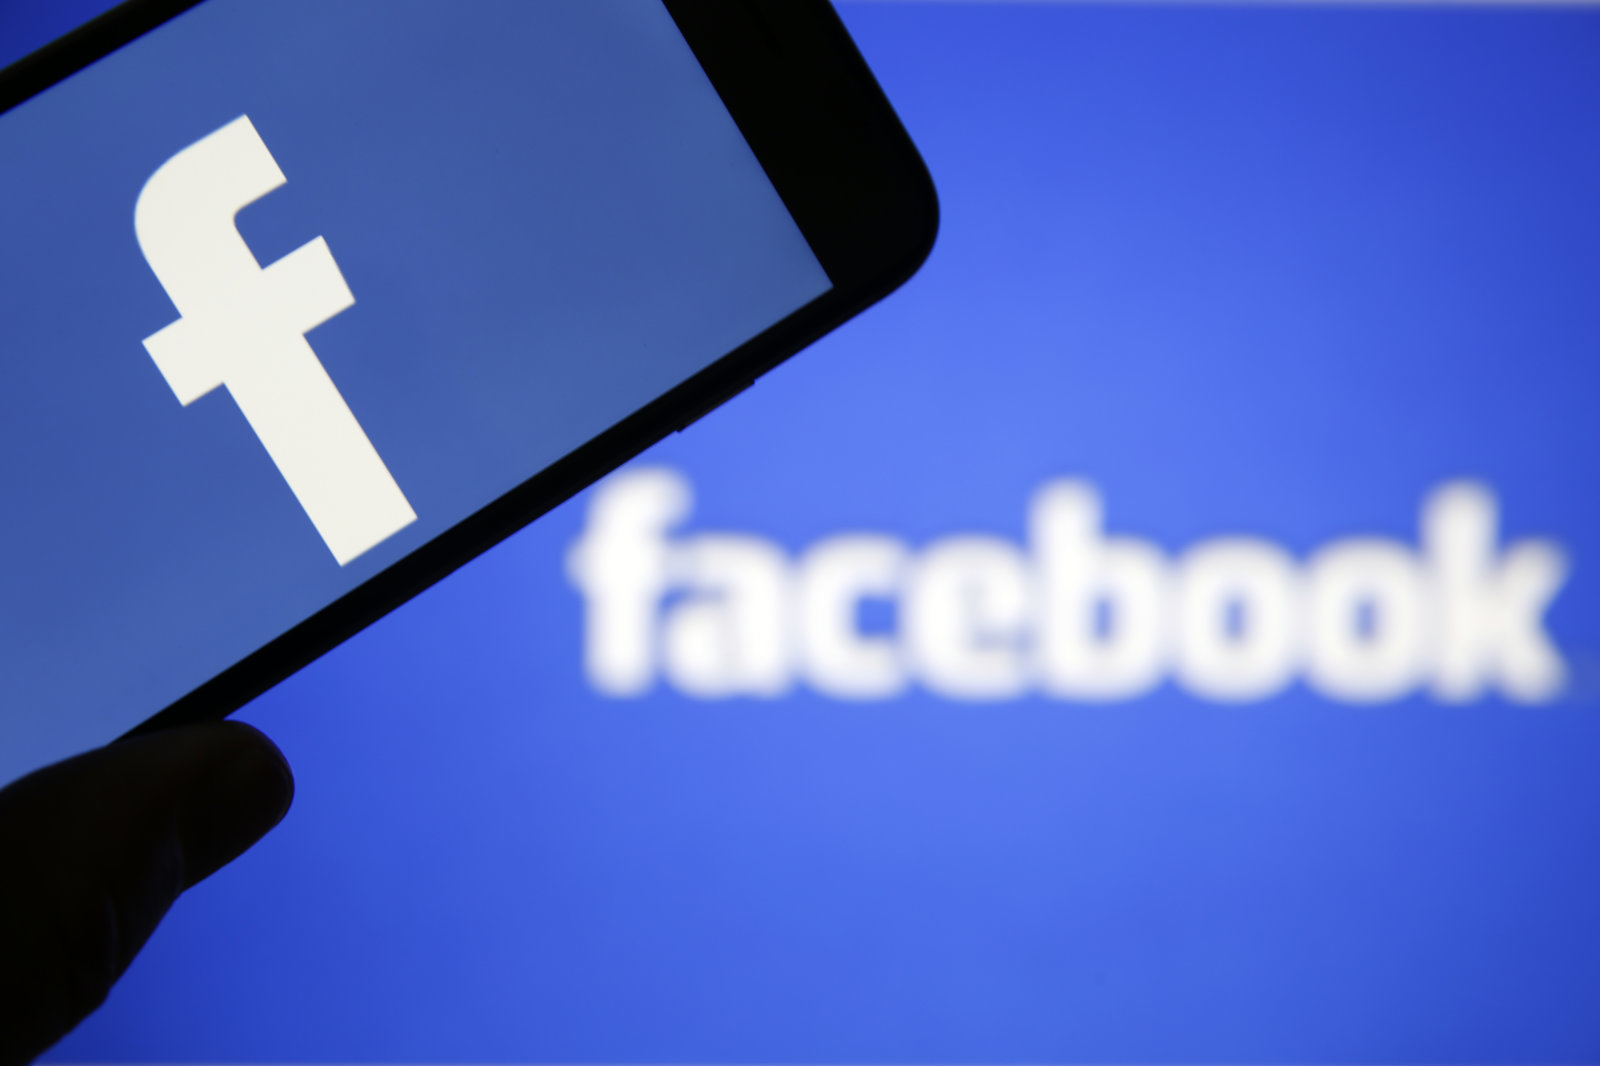 PARIS, FRANCE - MARCH 20:  In this photo illustration the Facebook logo is seen on the screen of an iPhone in front of a computer screen showing a Facebook logo on March 20, 2018 in Paris, France. Cambridge Analytica is accused of collecting the personal information of 50 million users of the Facebook social network without their consent and would have used it to develop software to predict and influence voter voting during the campaign American election according to the New York Times and the Guardian. Facebook share price fell by more than 5% Monday shortly after the opening of Wall Street.  (Photo Illustration by Chesnot/Getty Images)